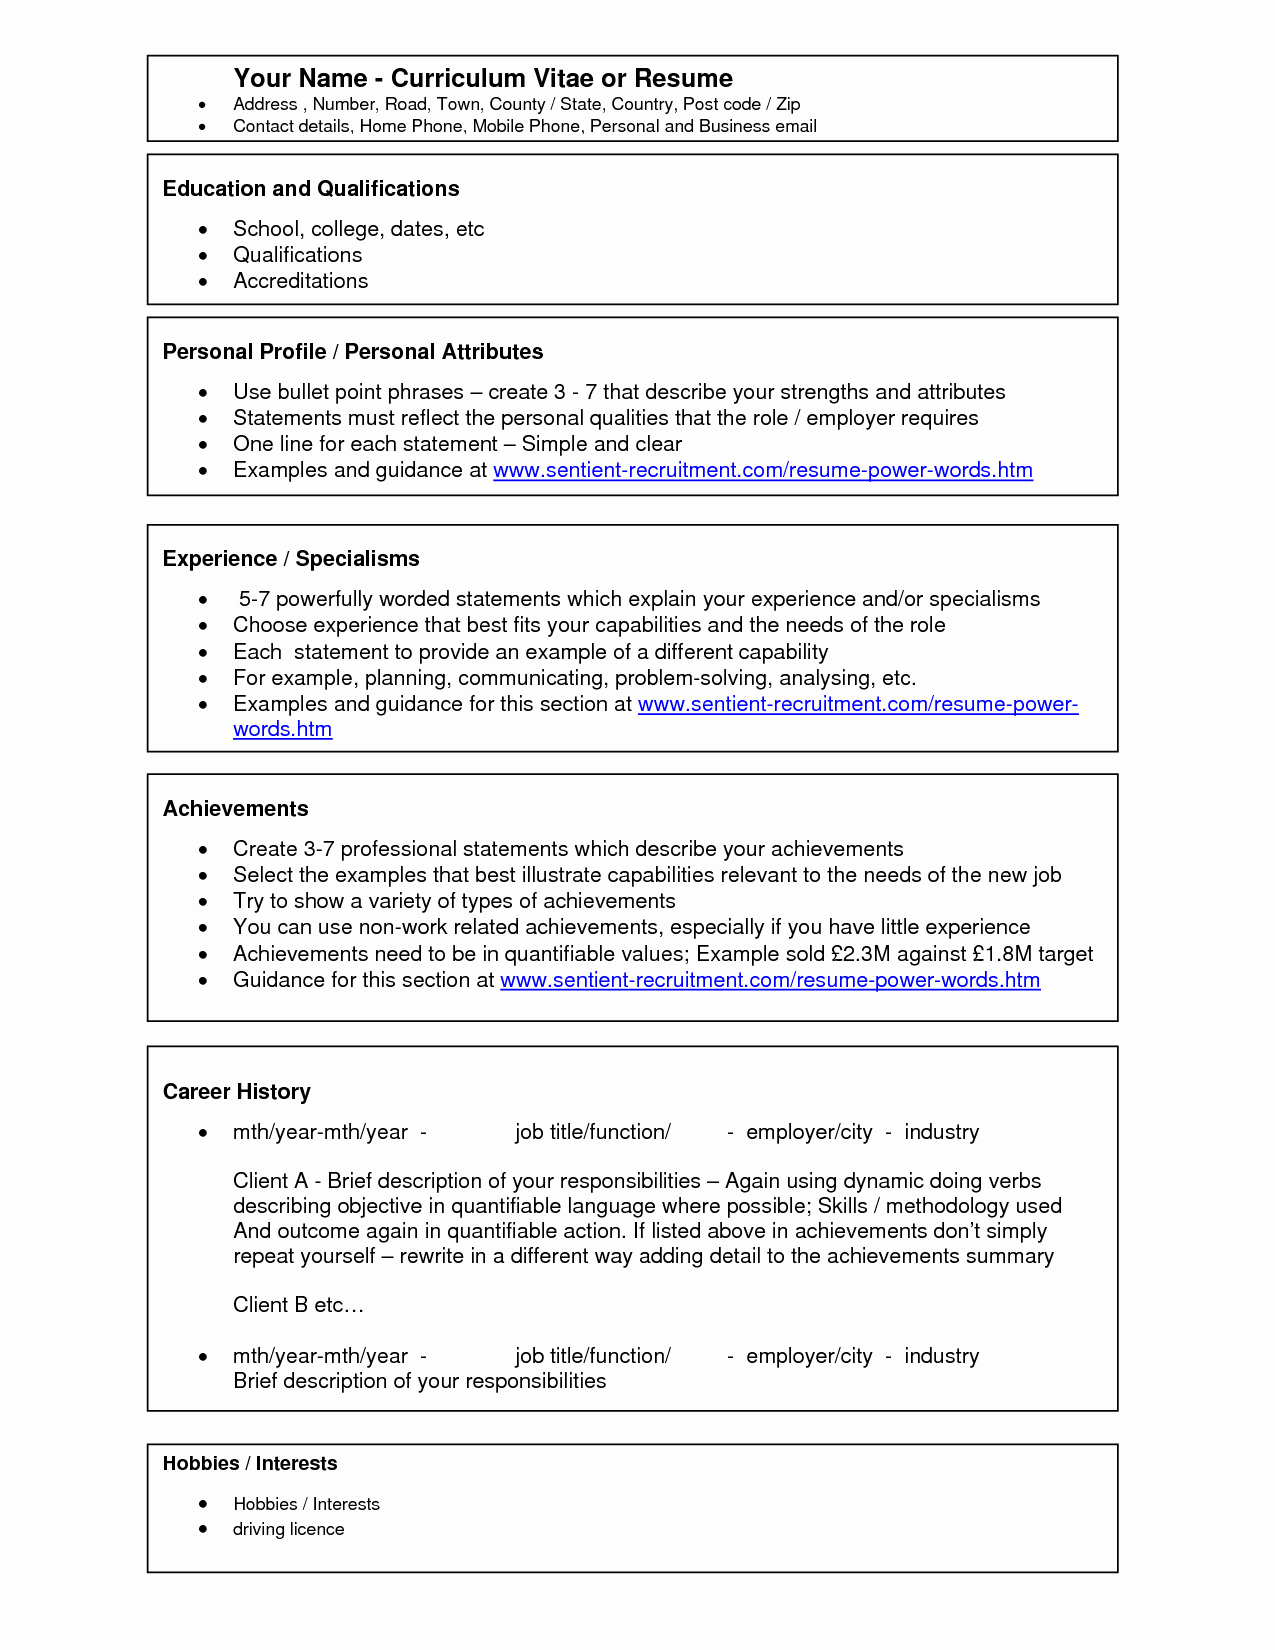 Microsoft Word Template for Resume Unique Pic Scope Of Work Template